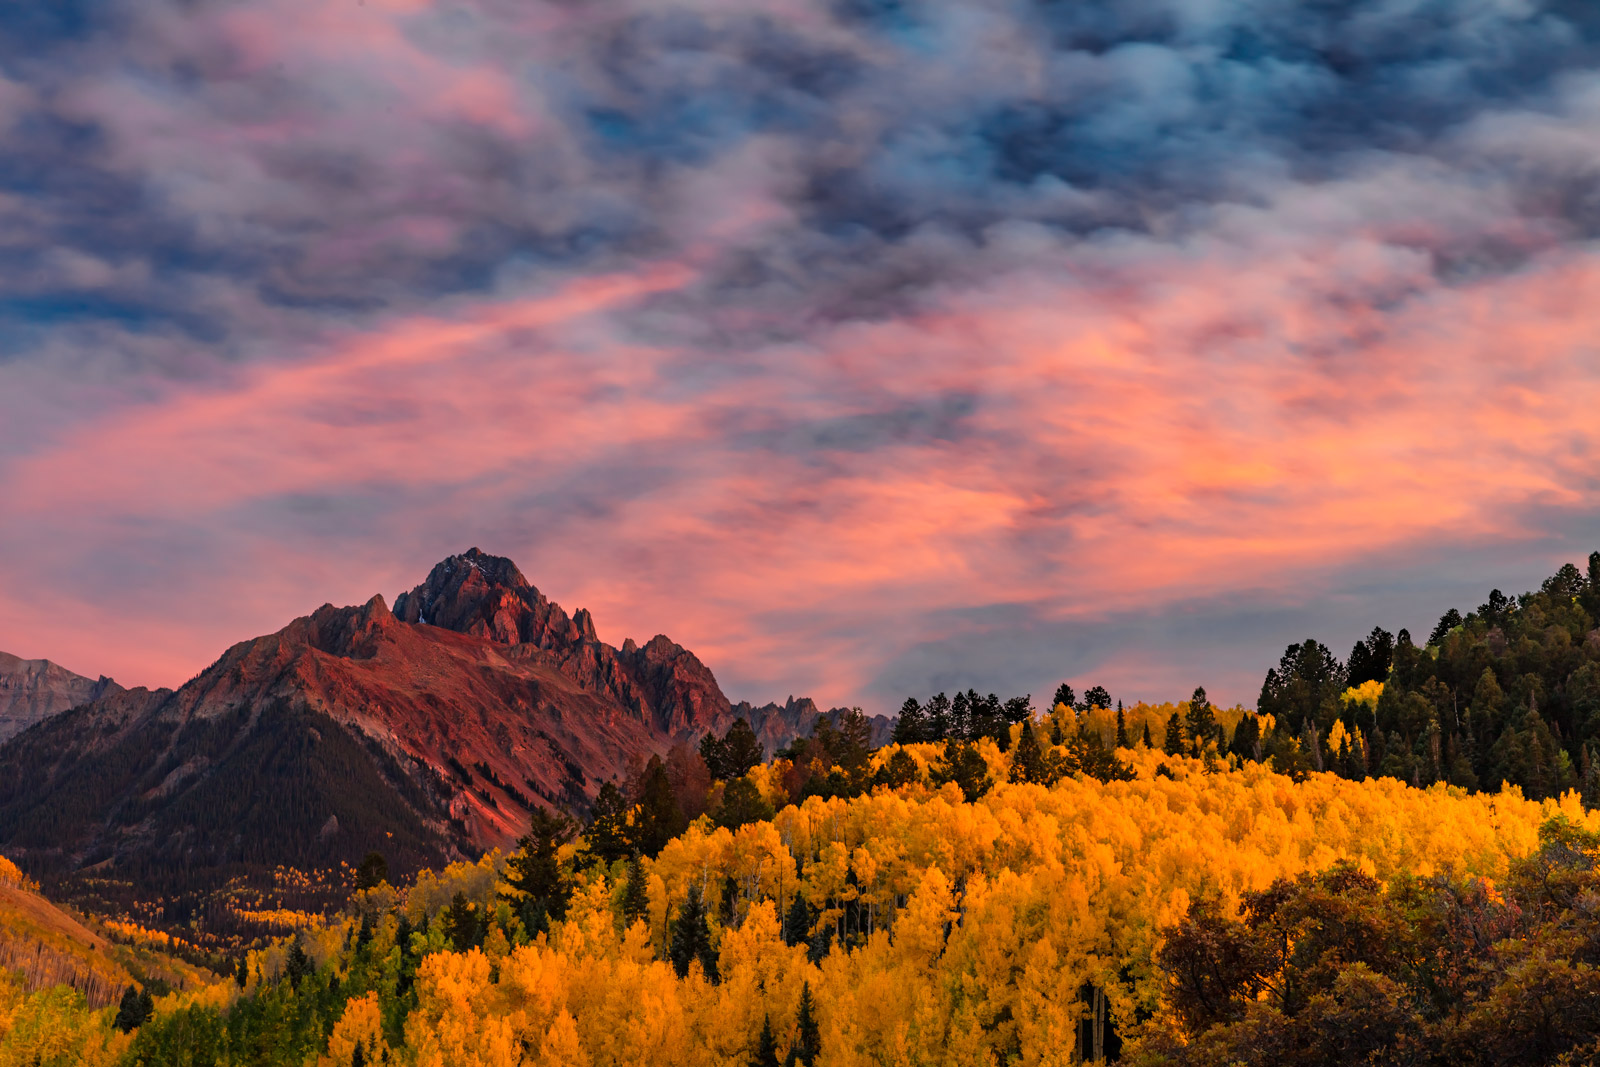 A Limited Edition, Fine Art photograph of a stunning sunset over Mount Sneffels and hills of fall colors in the San Juan Mountains...